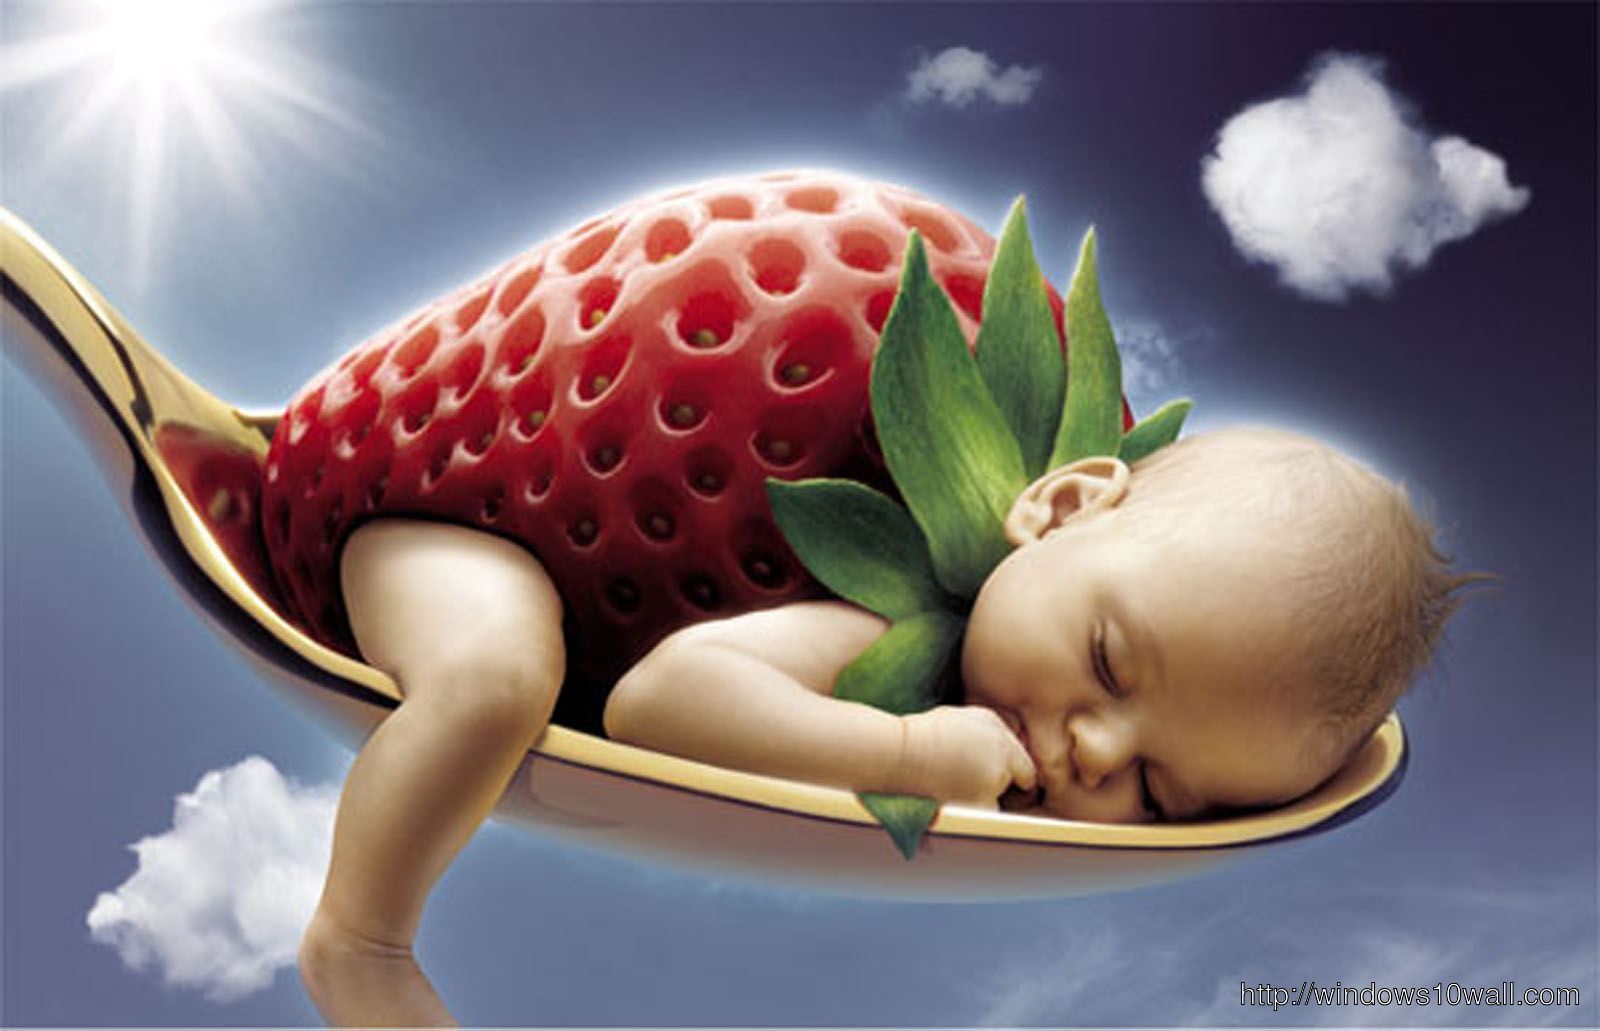 Sweet Baby Picture with Strawberry on Spoon Wallpaper